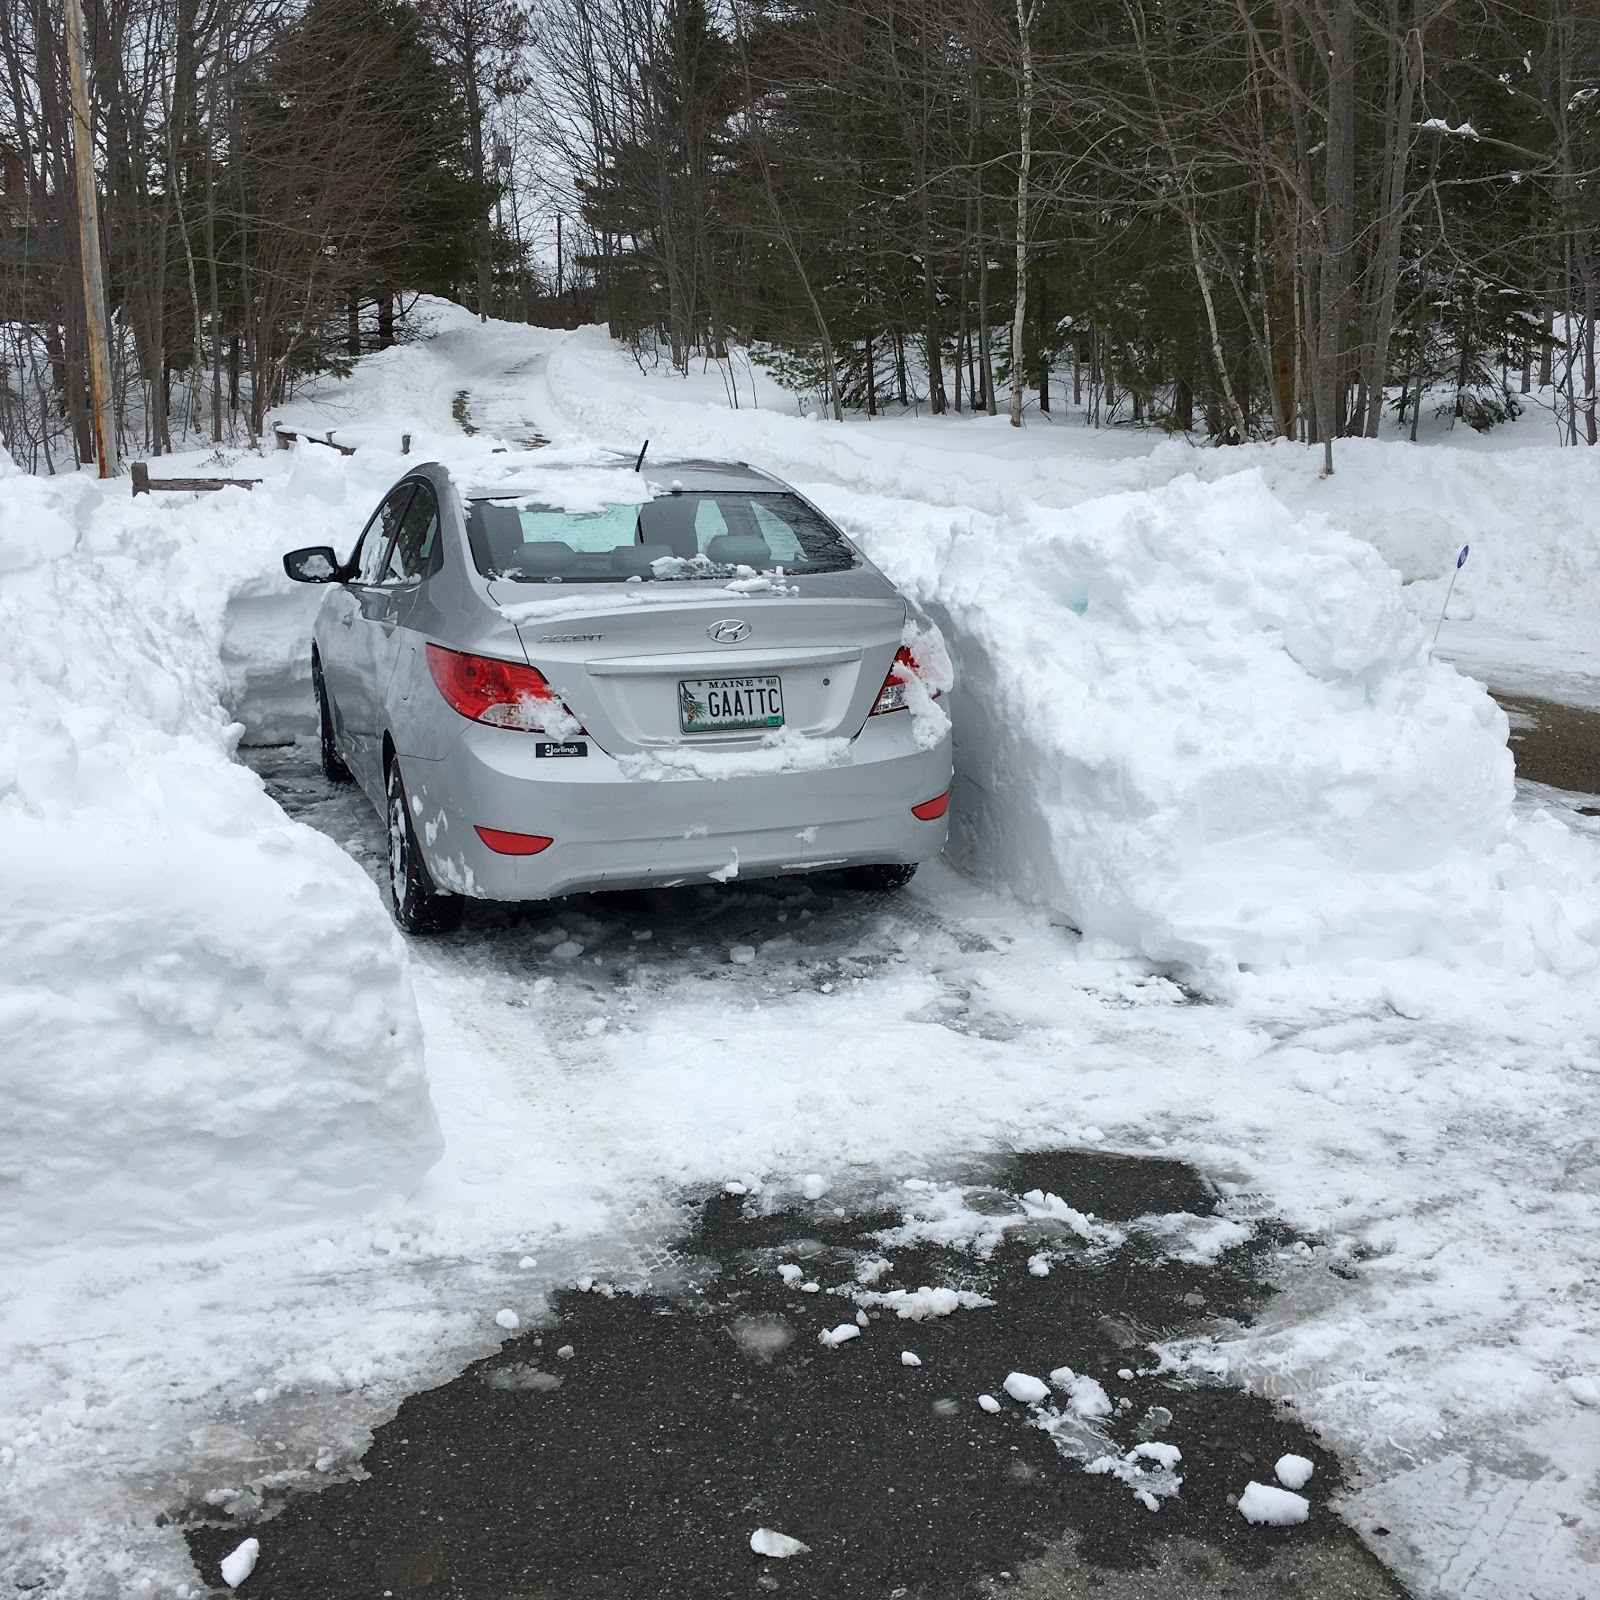 4 feet of snow in one week in Maine, Dayana Knits blog